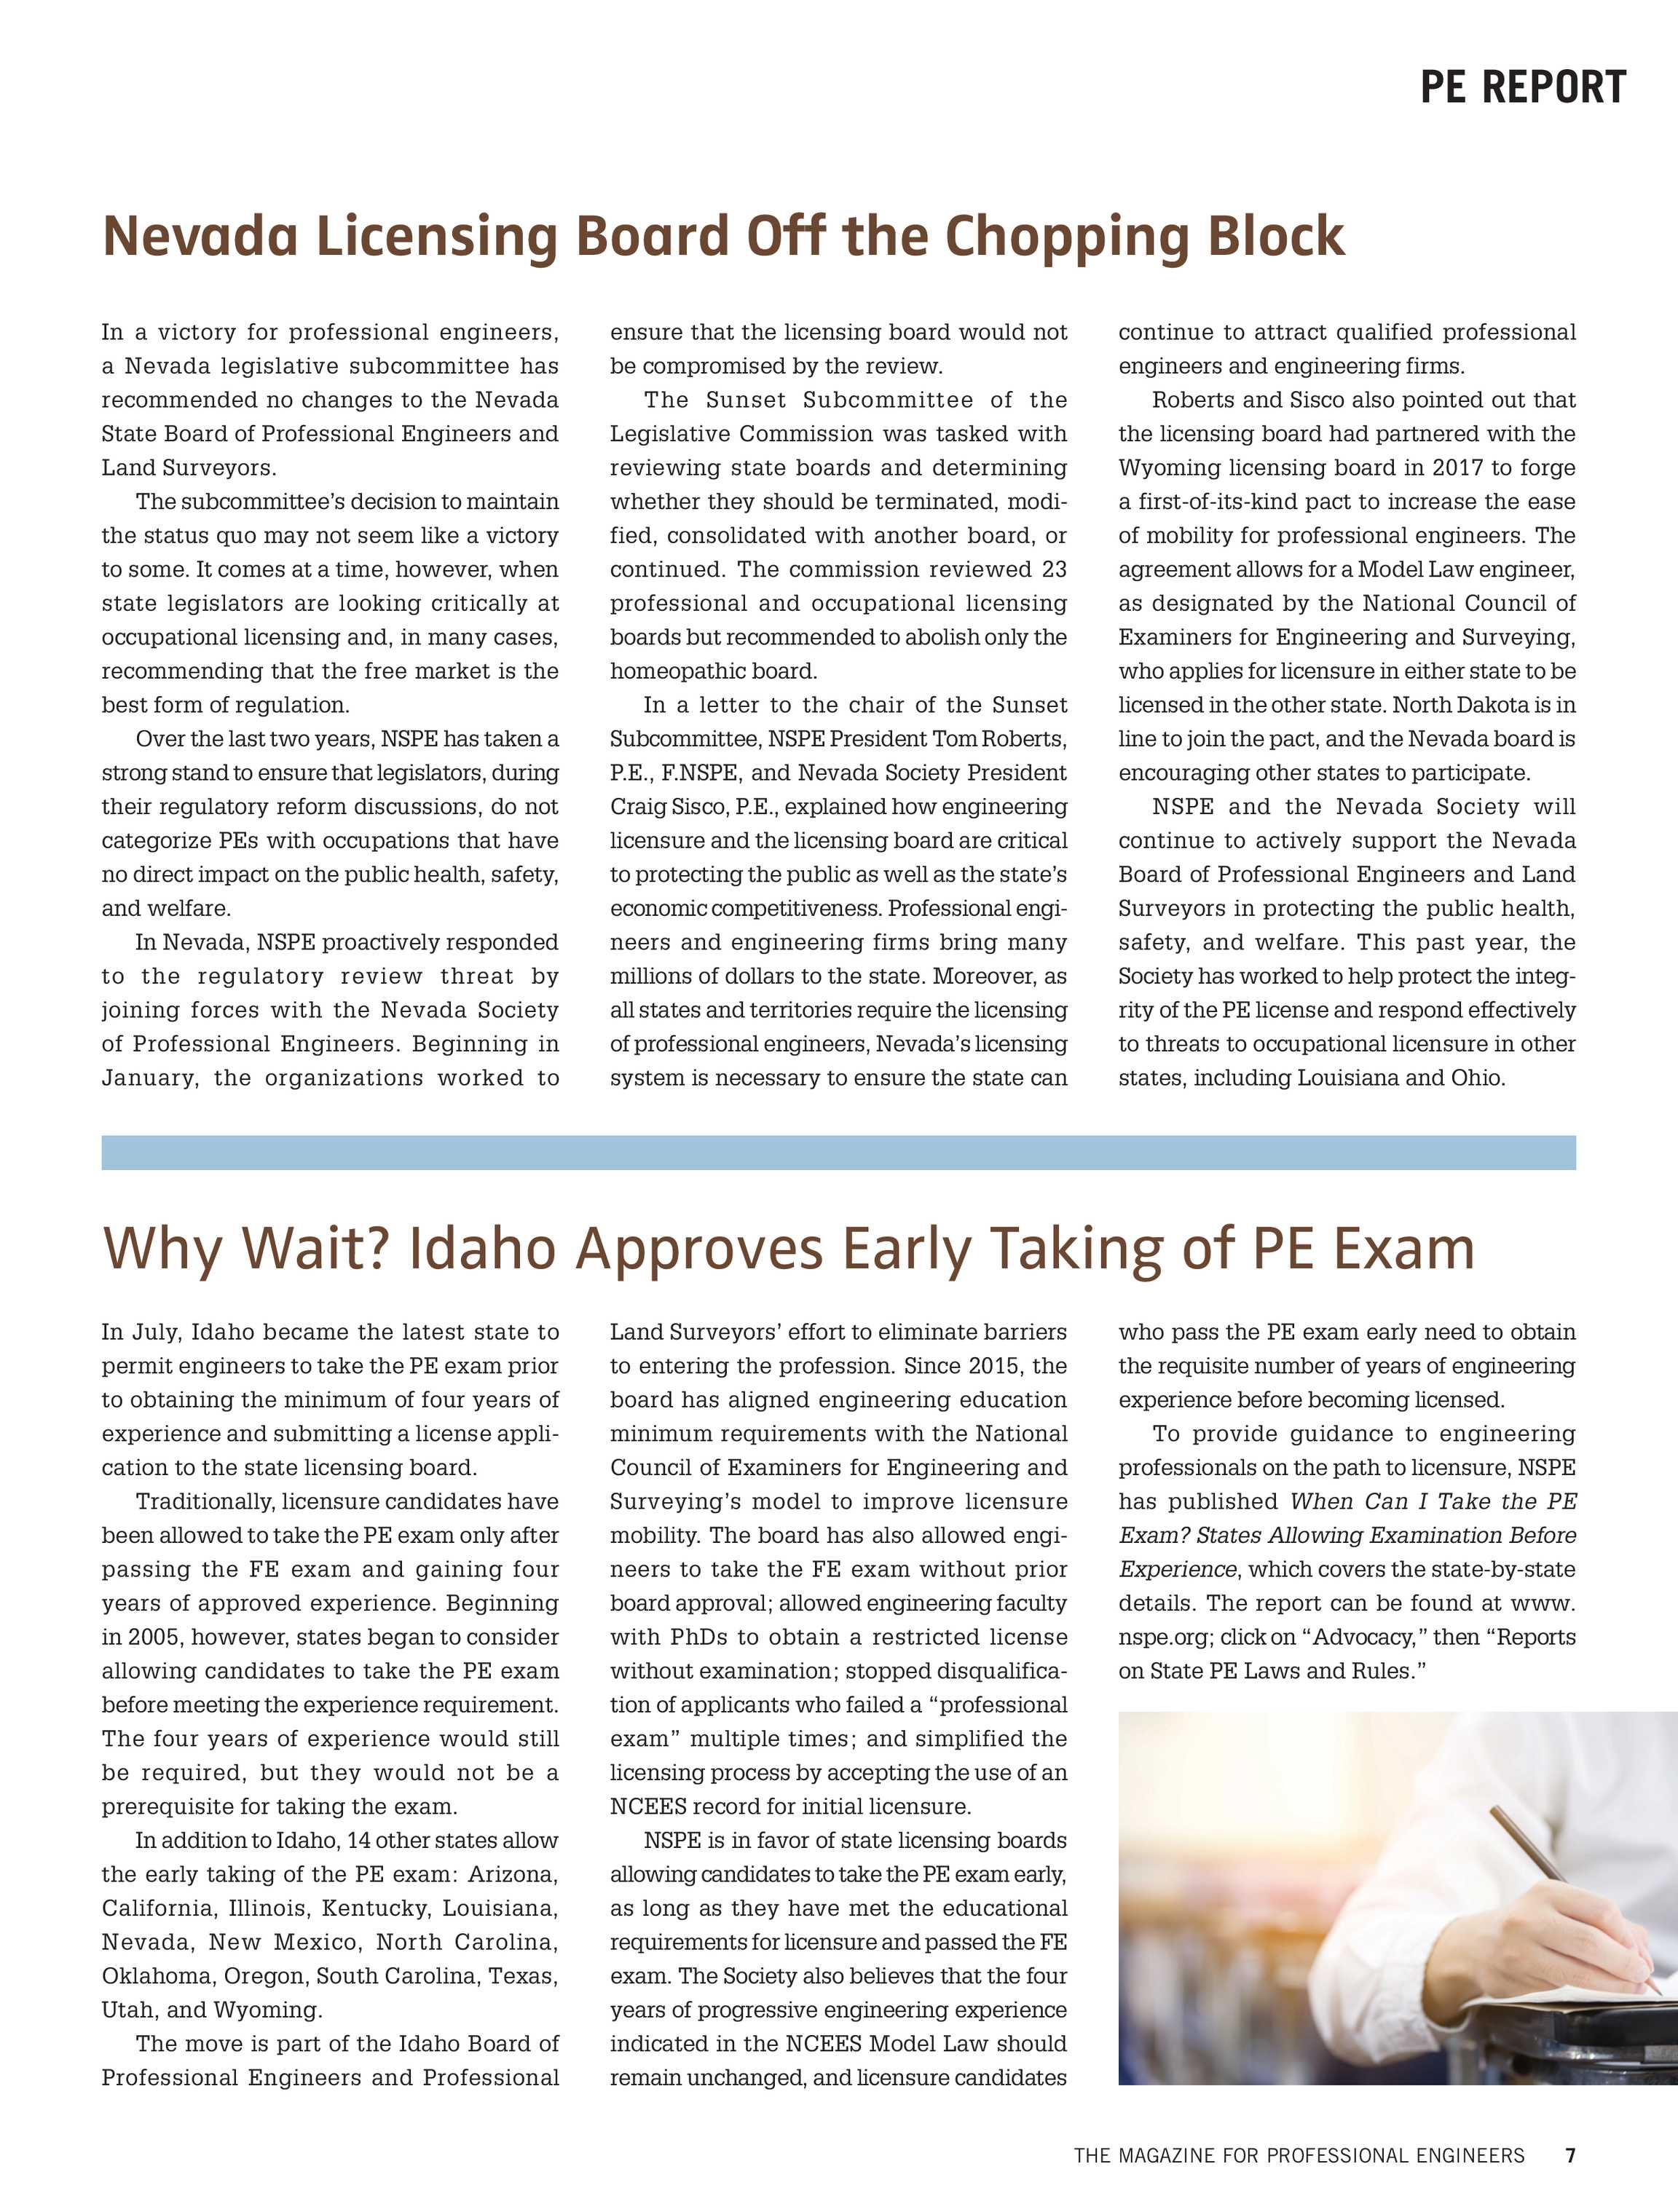 PE Magazine - September/October 2018 - page 7